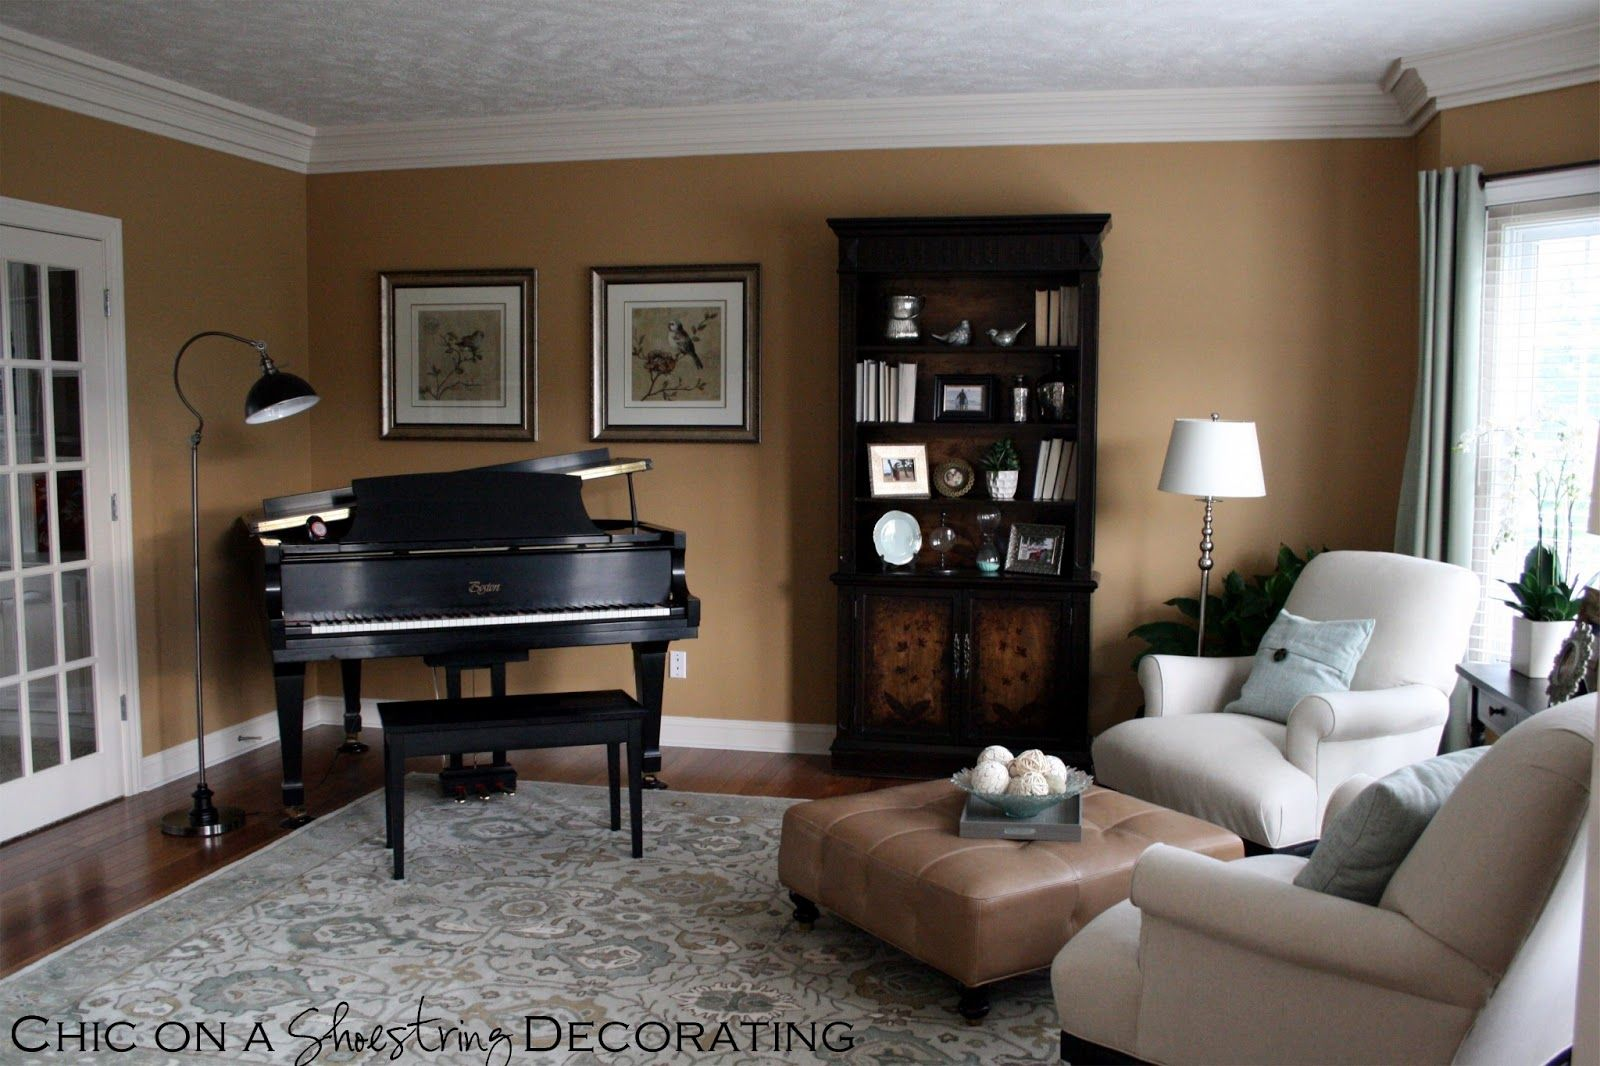 Baby Grand Piano Living Room Arrangement By Chic On A Shoestring Decorating